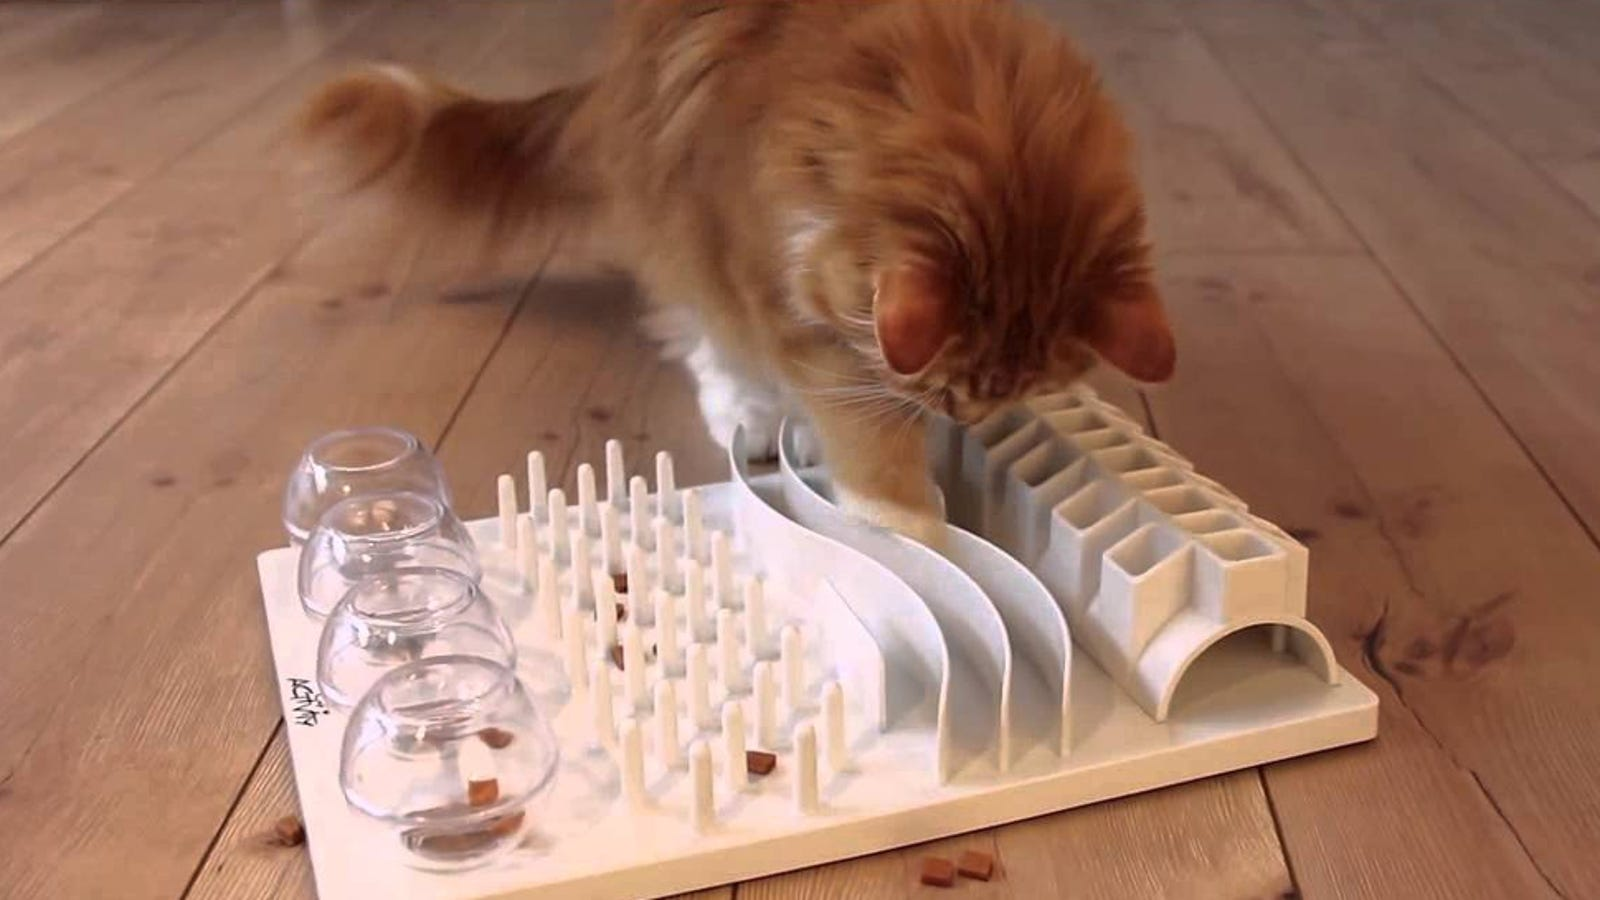 Cats Are Happier and Healthier When You Make Them Work for Their Food